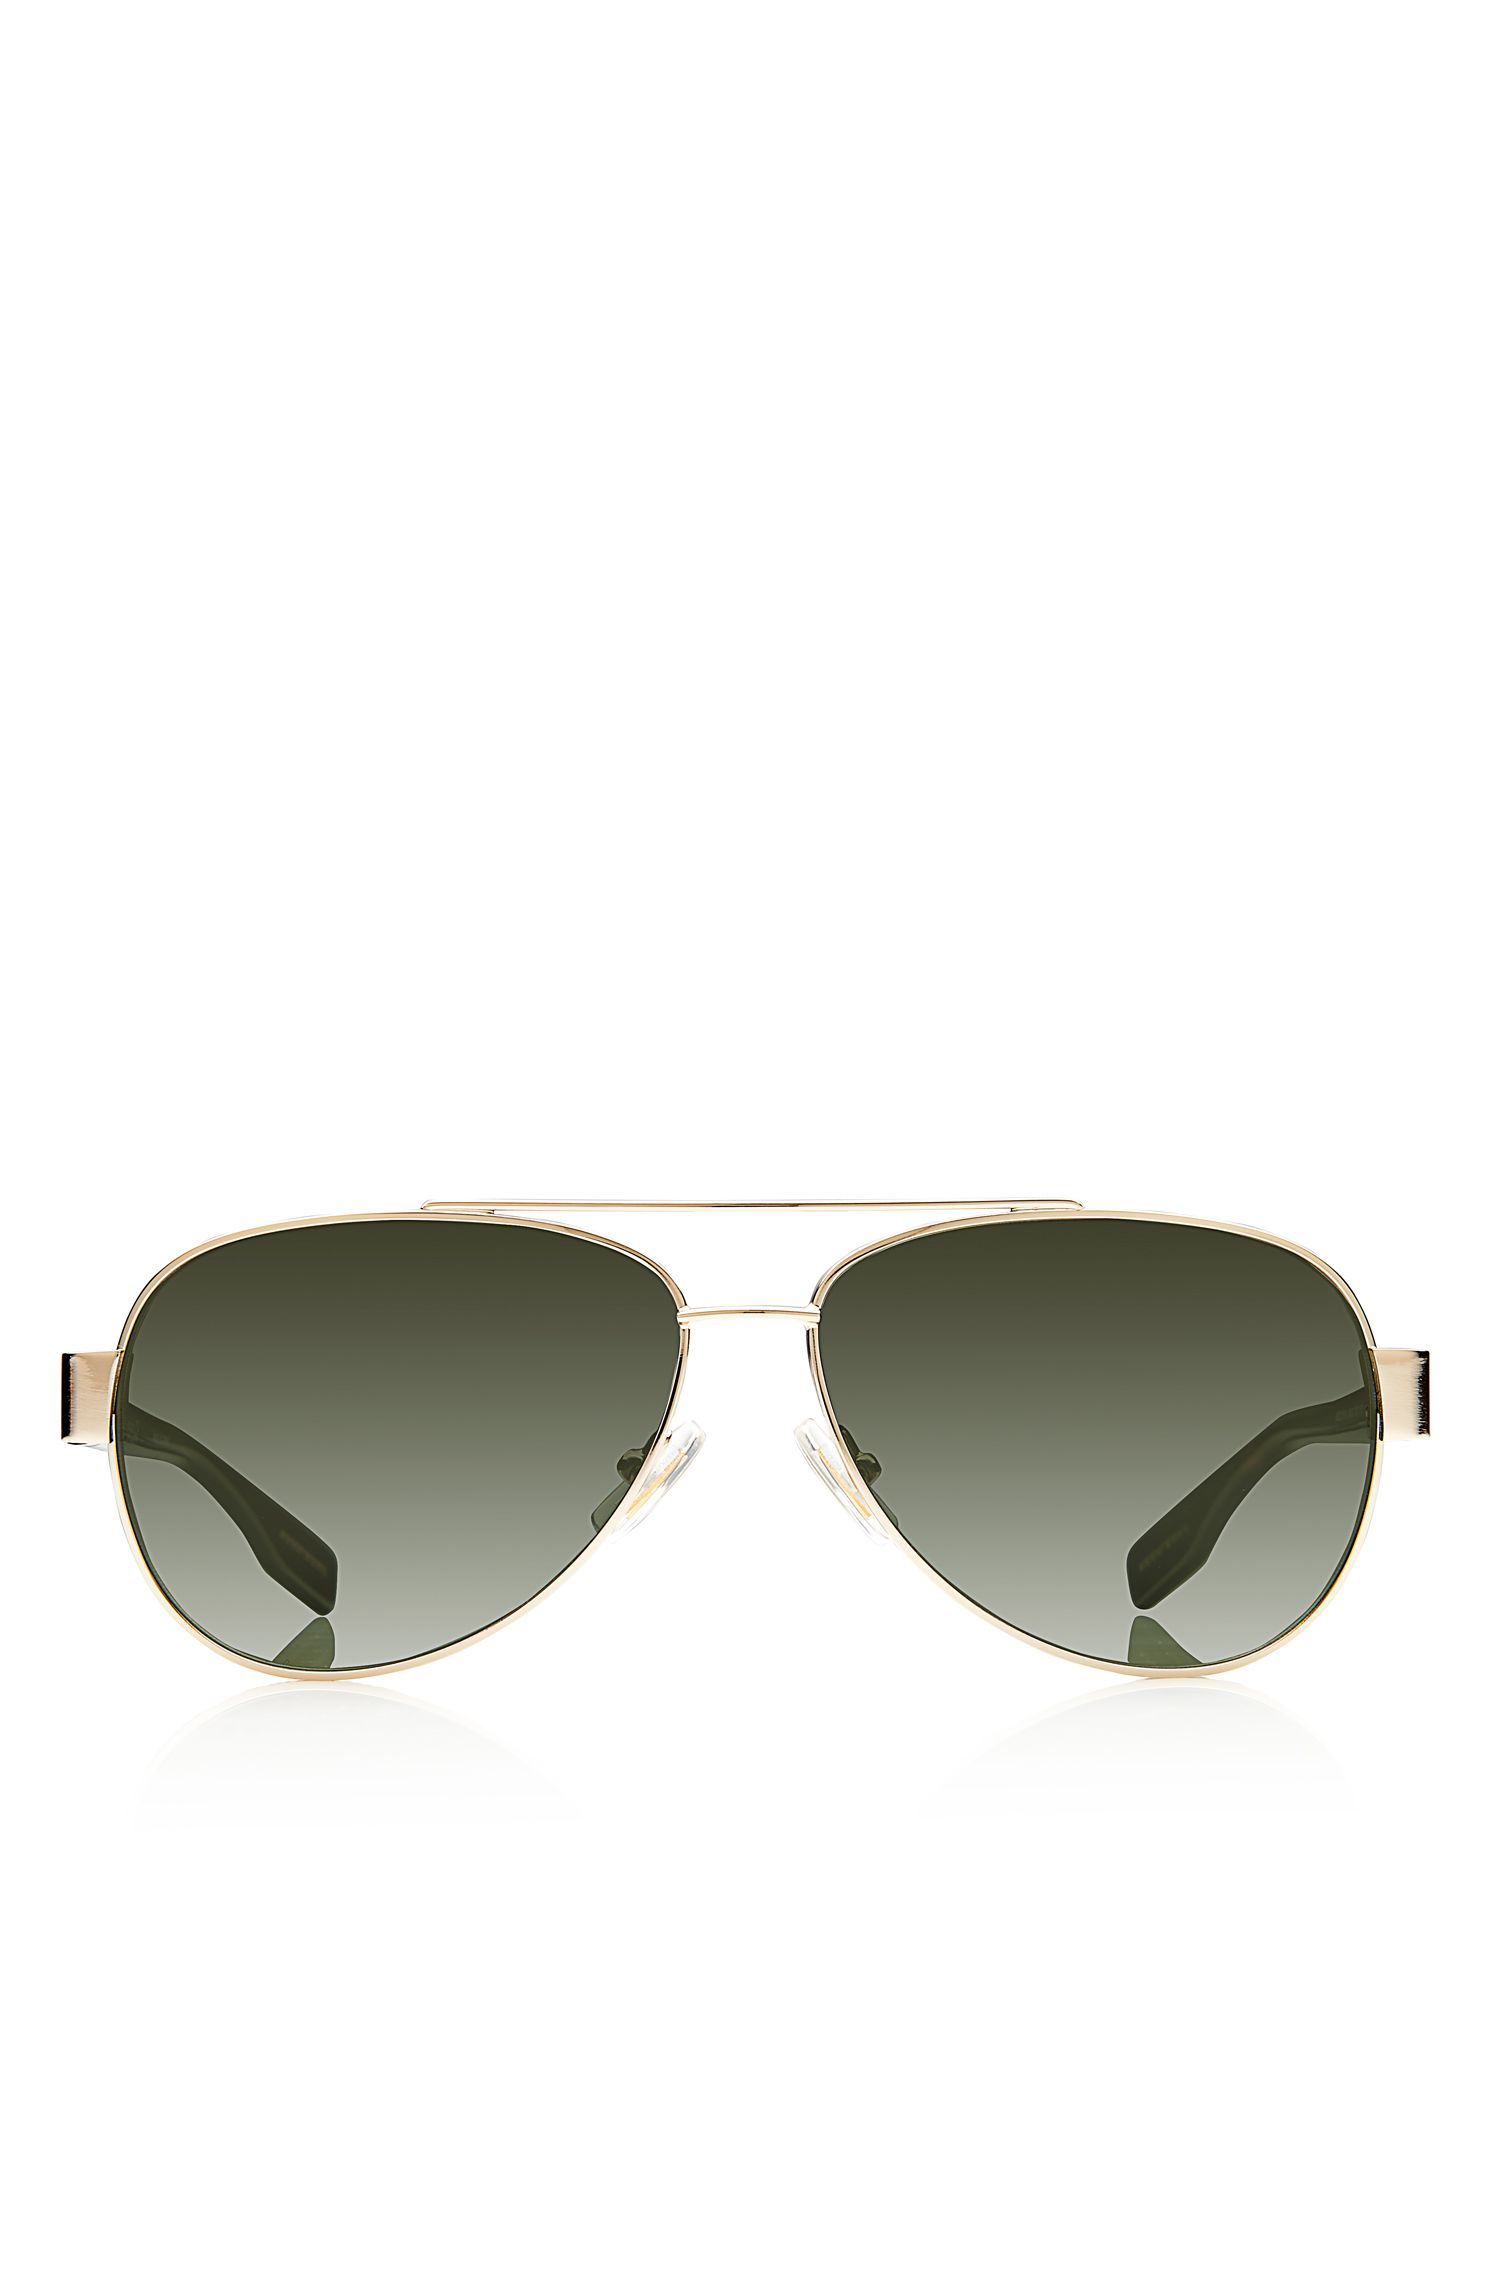 'Sunglasses' | Light Gold Metal Aviator Sunglasses